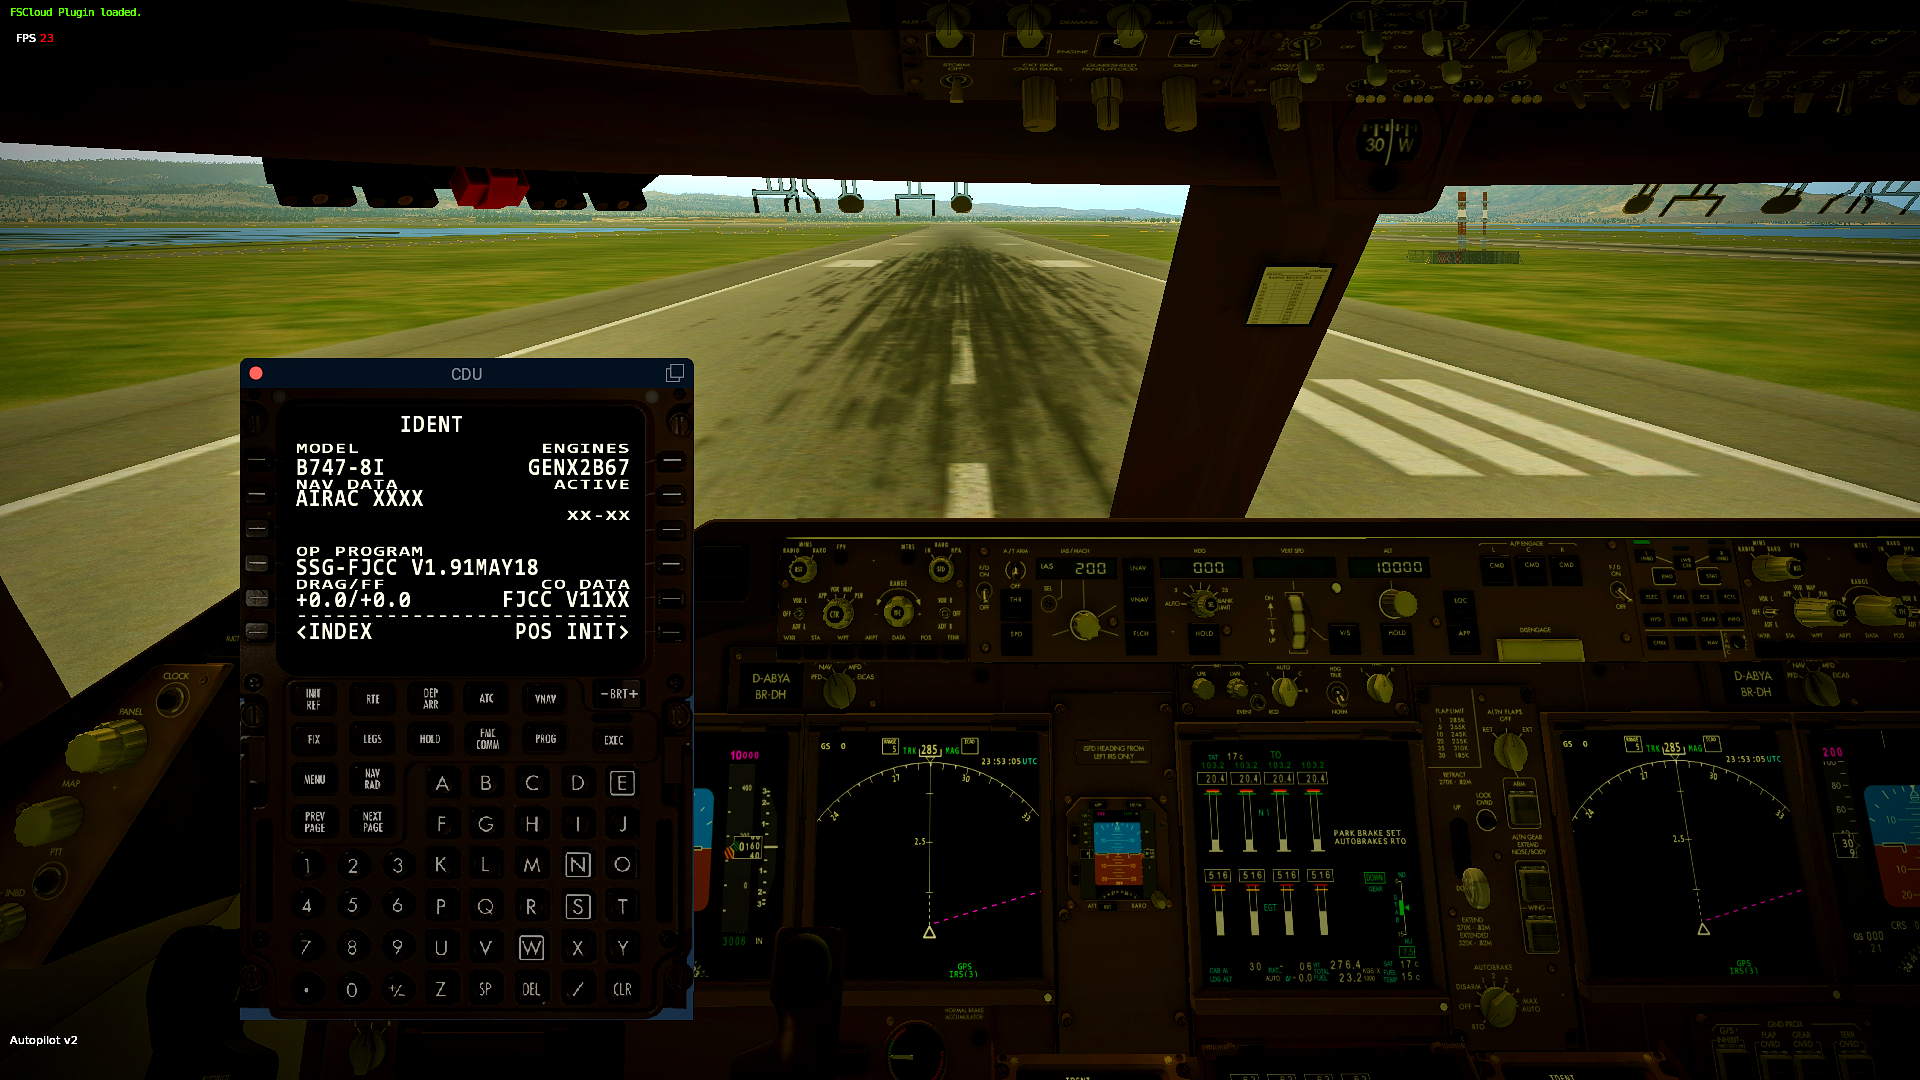 SSG Boeing 747-8i Navdata Issue - Aircraft General